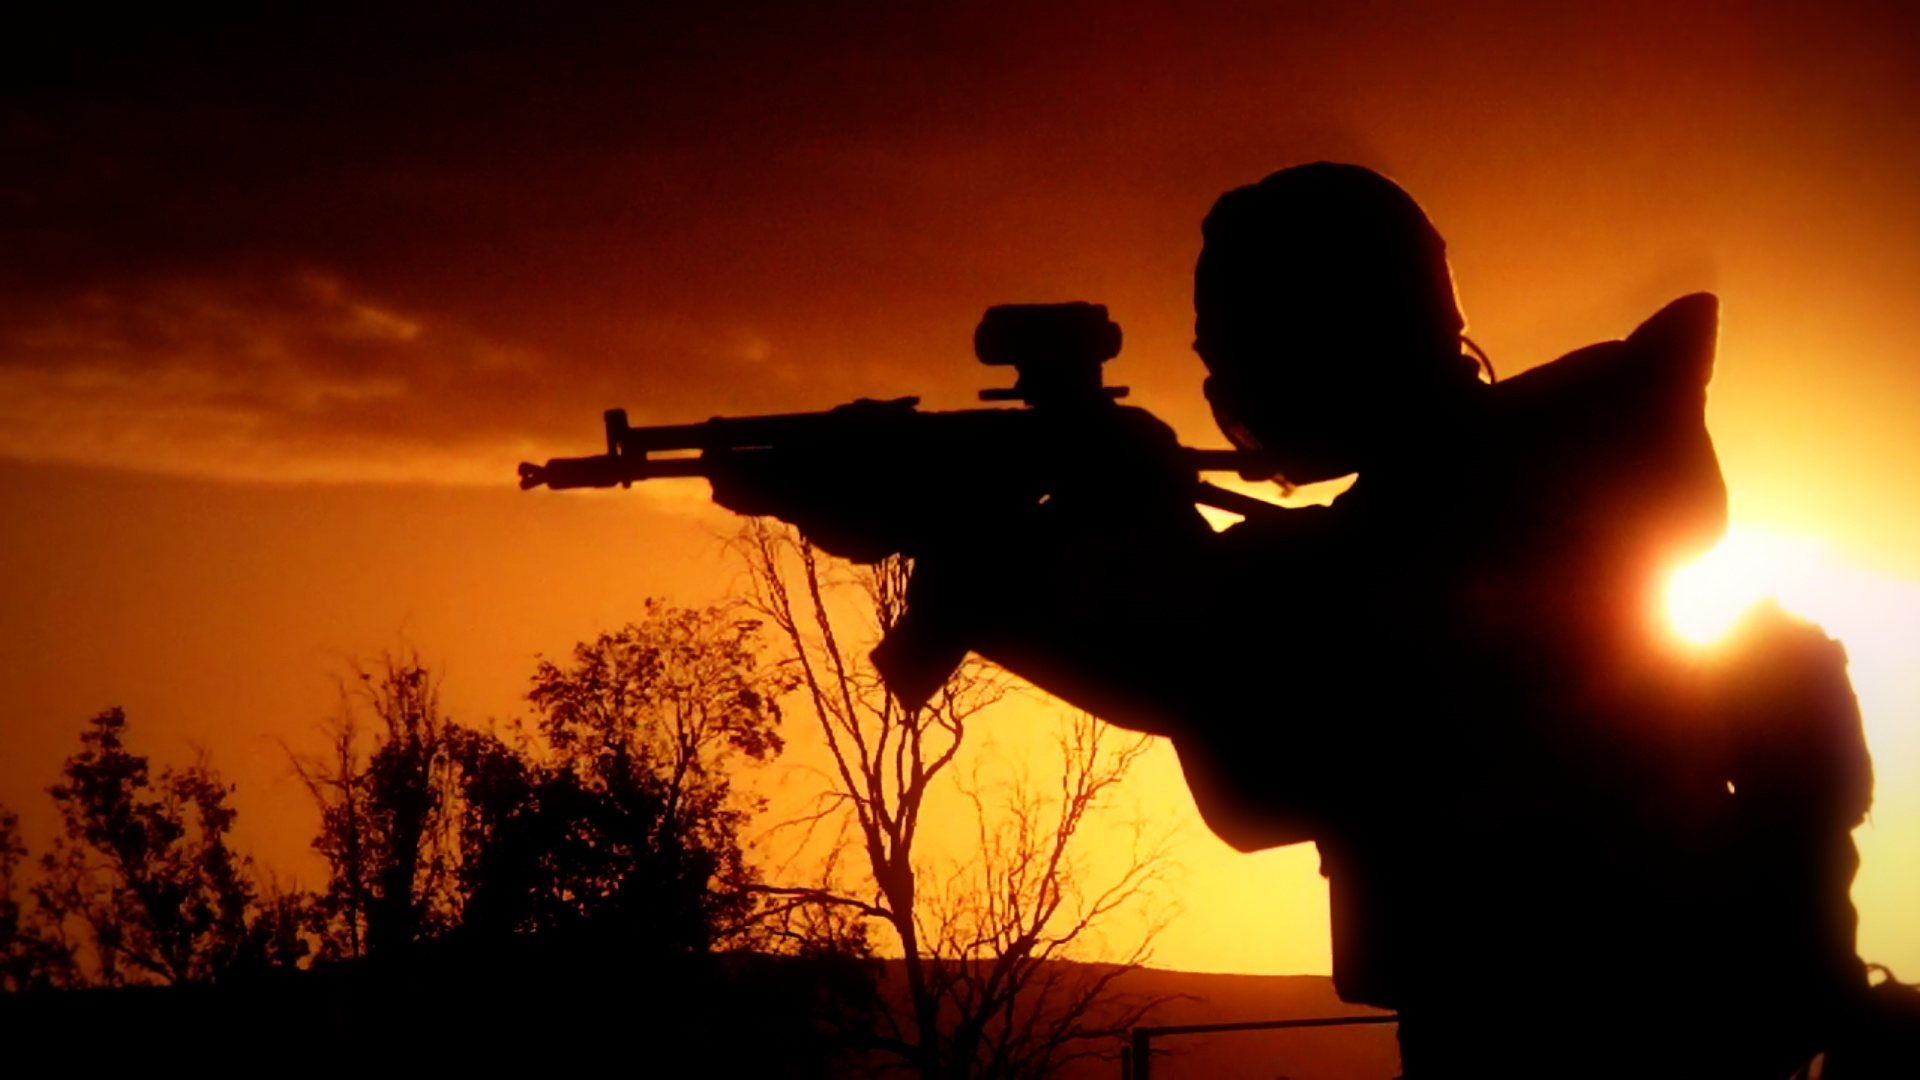 The Best Cinematic Airsoft Gameplay Video